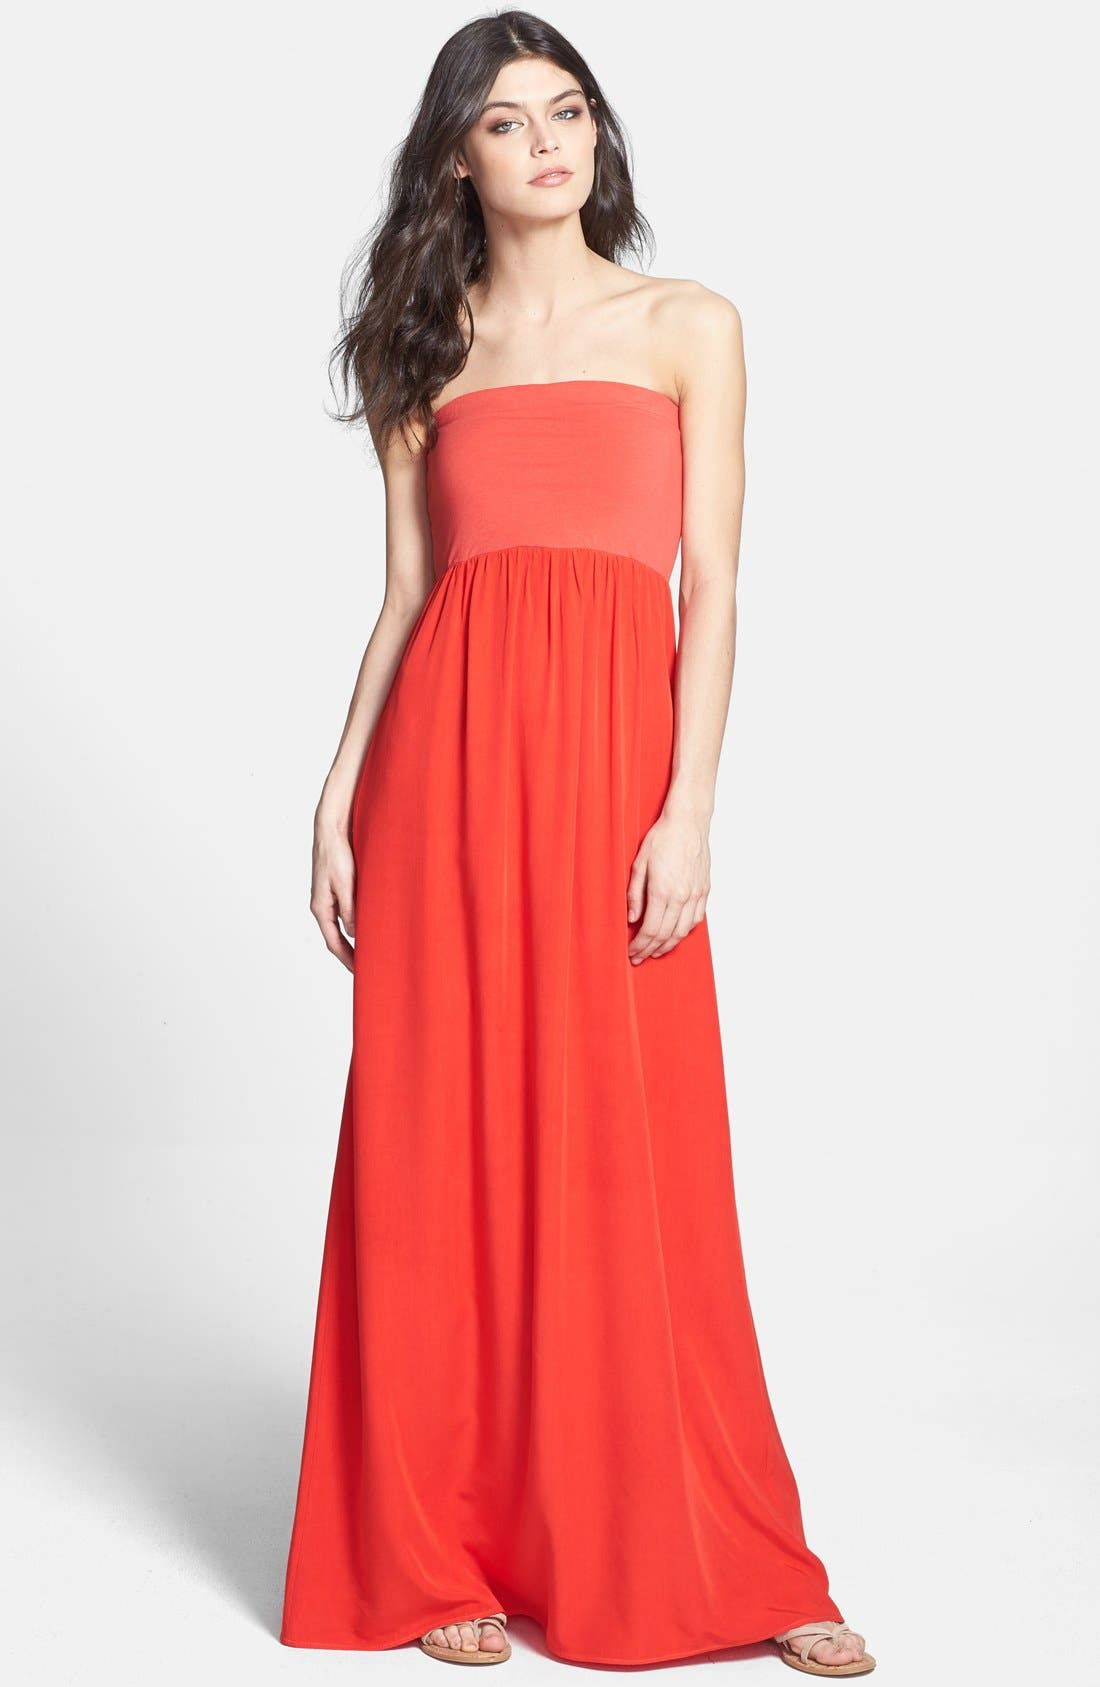 Main Image - Splendid Strapless Knit Maxi Dress